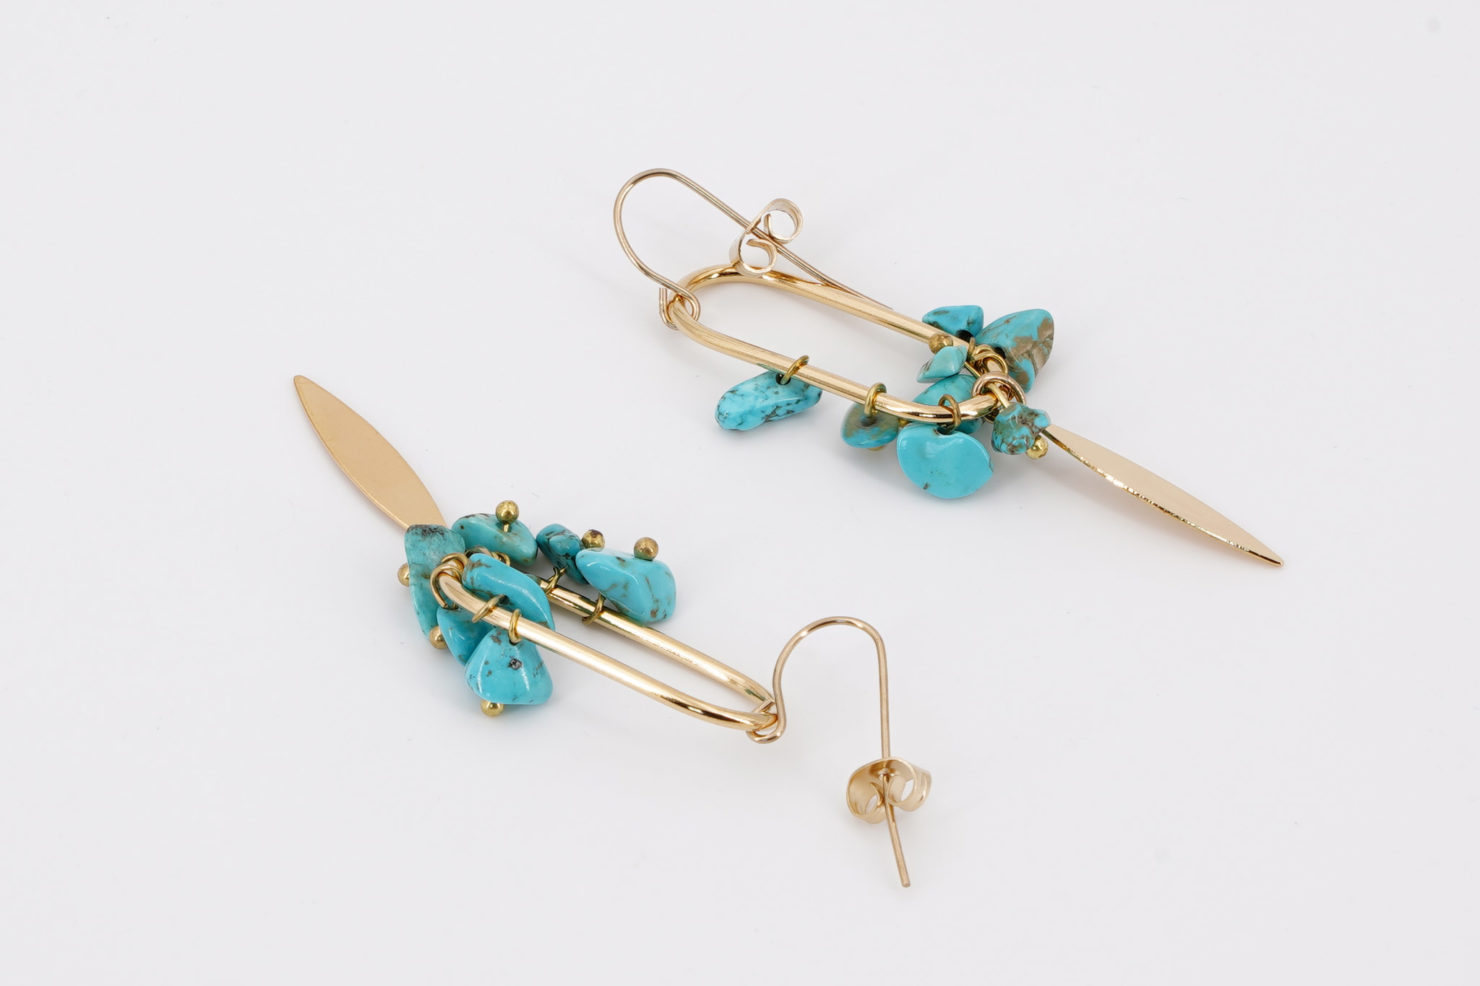 SANTORIN EARRINGS BLUE MEDICINE DOUCE